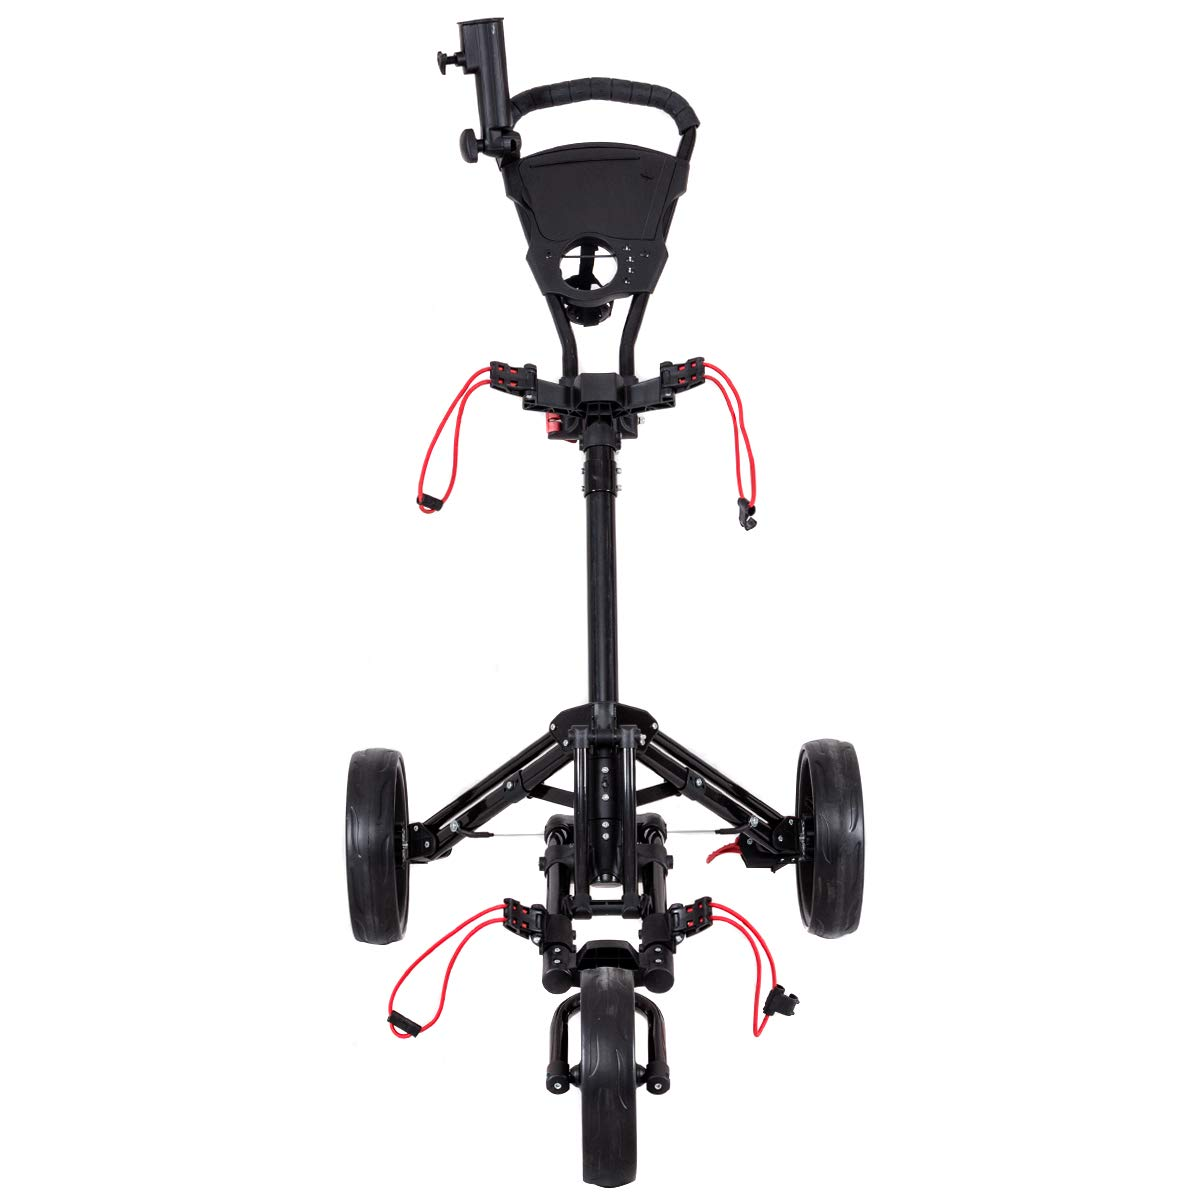 GYMAX Golf Cart, 3 Wheels Foldable Golf Trolley with Umbrella and Tee Holder, Easy Push and Pull Hand Cart, with Umbrella Scorecard Drink Holder